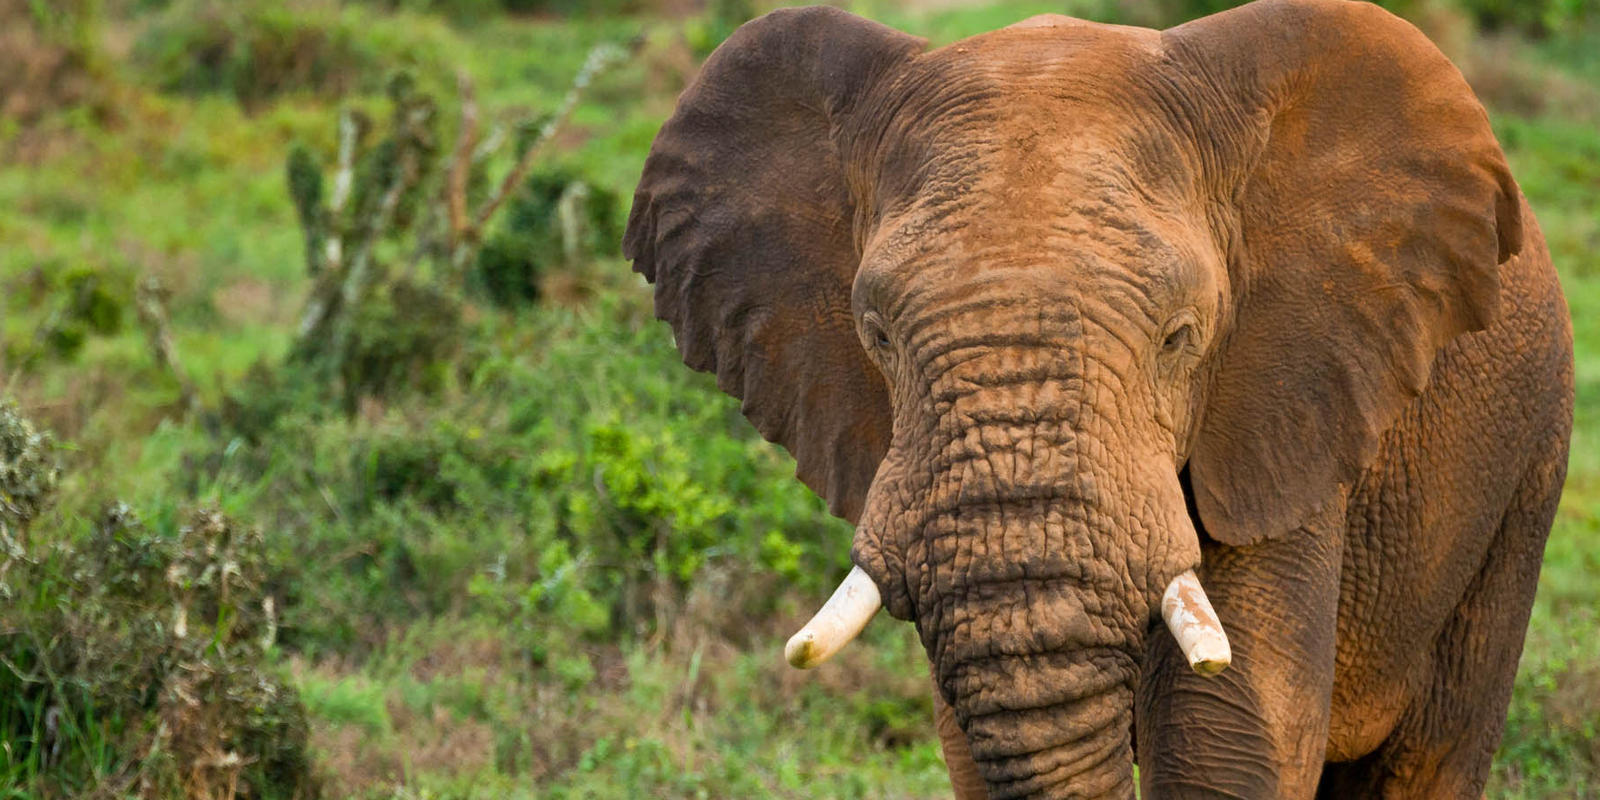 How Many Muscles Does An Elephants Trunk Have And 6 Other Elephant